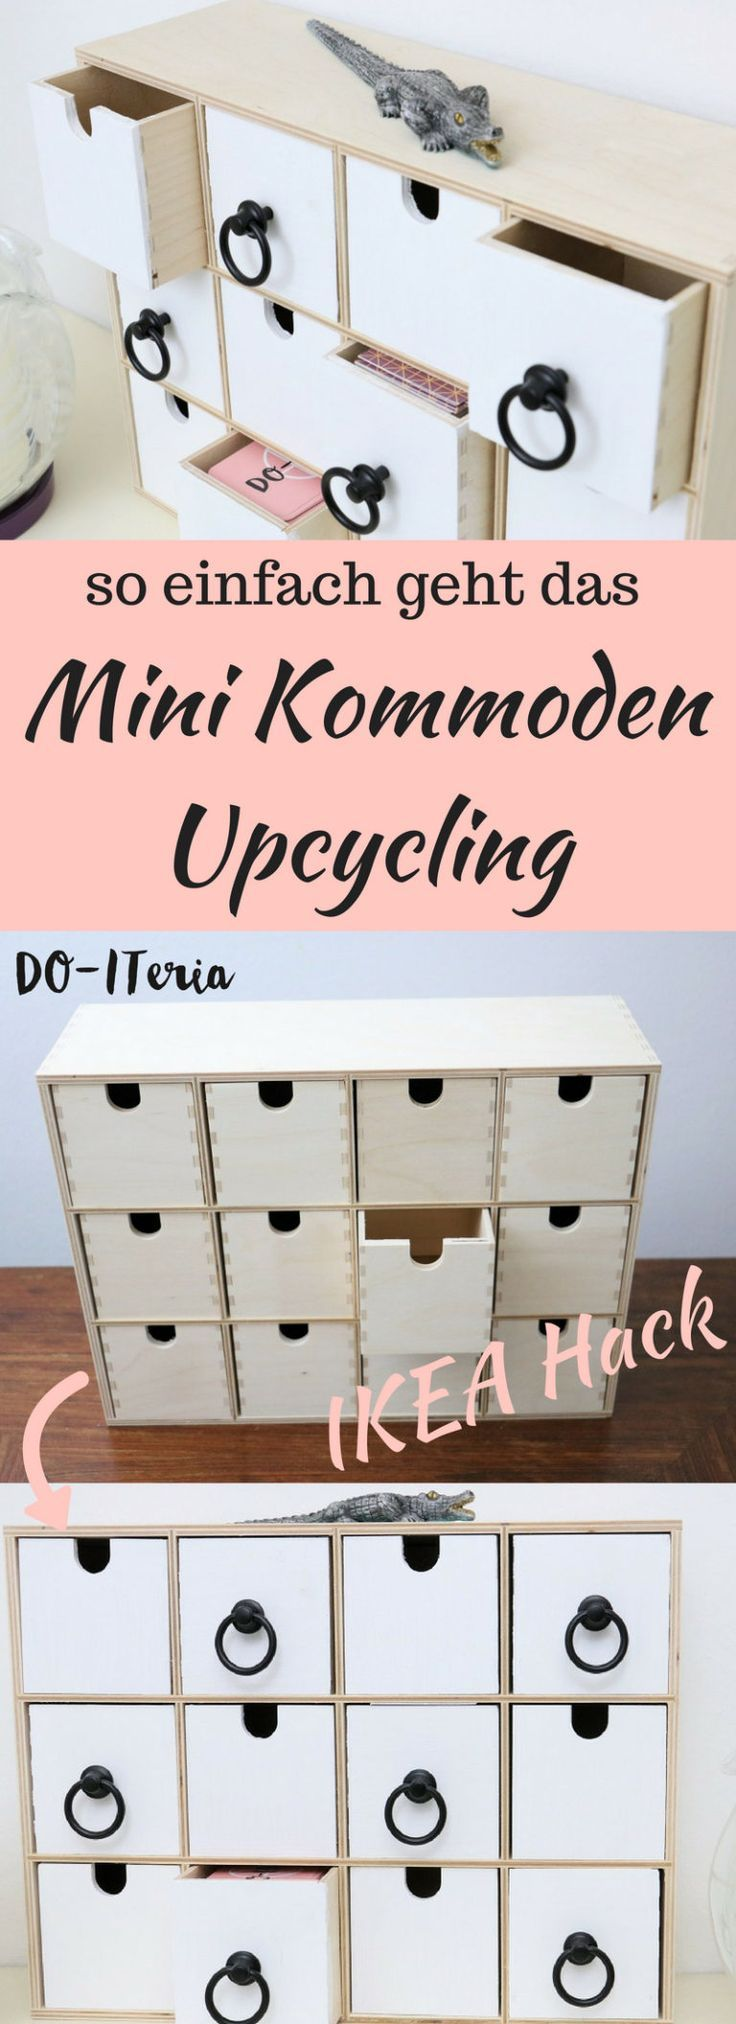 Ikea Hack: schickes Upcycling einer Mini Kommode